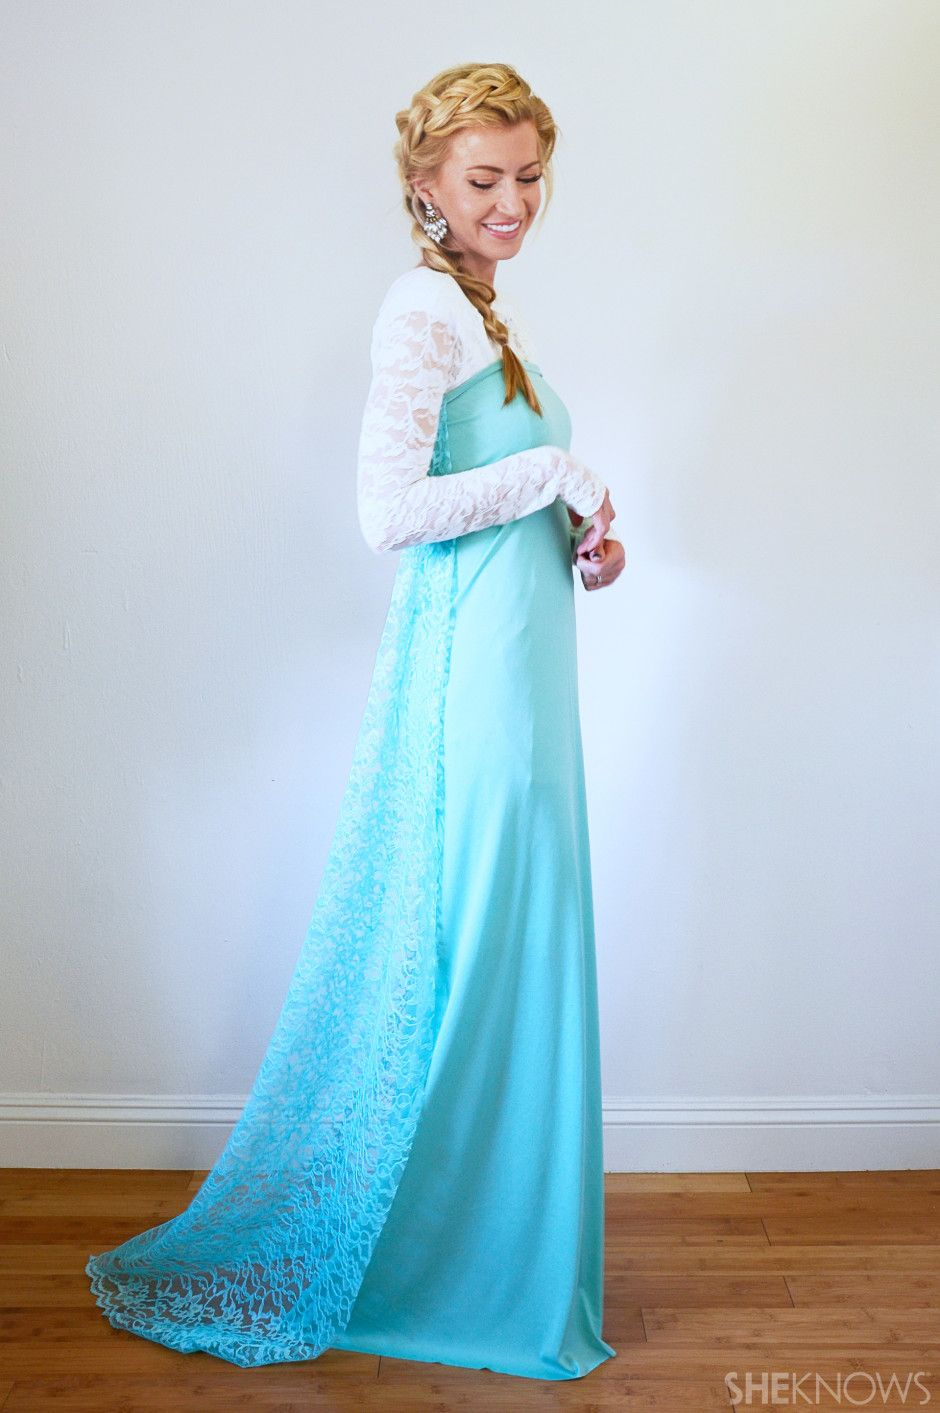 Gorgeous Disney princess costumes you can make with basic sewing skills